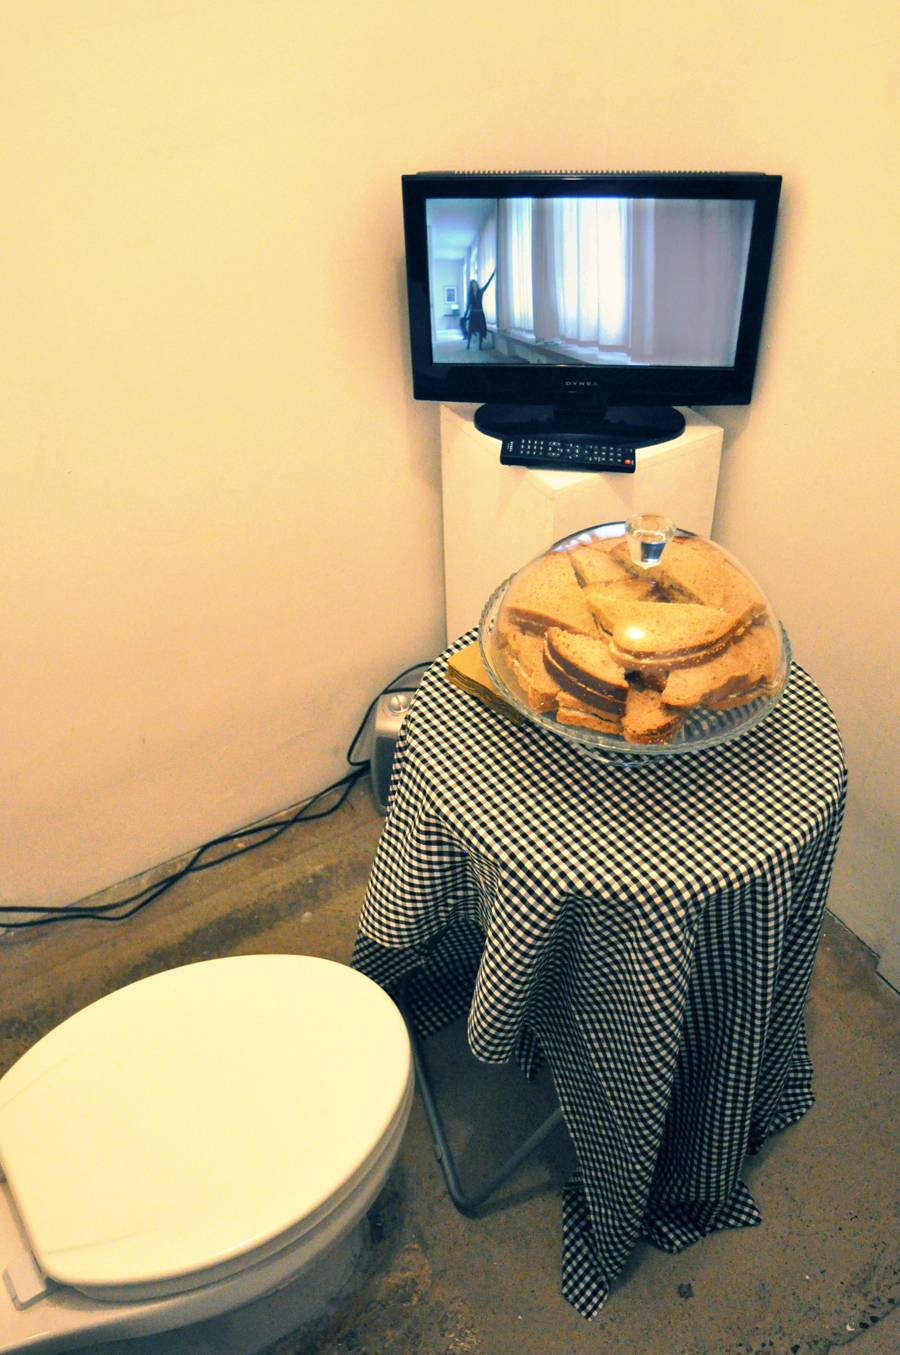 Dining Chamber (Performance Installation, 2013)